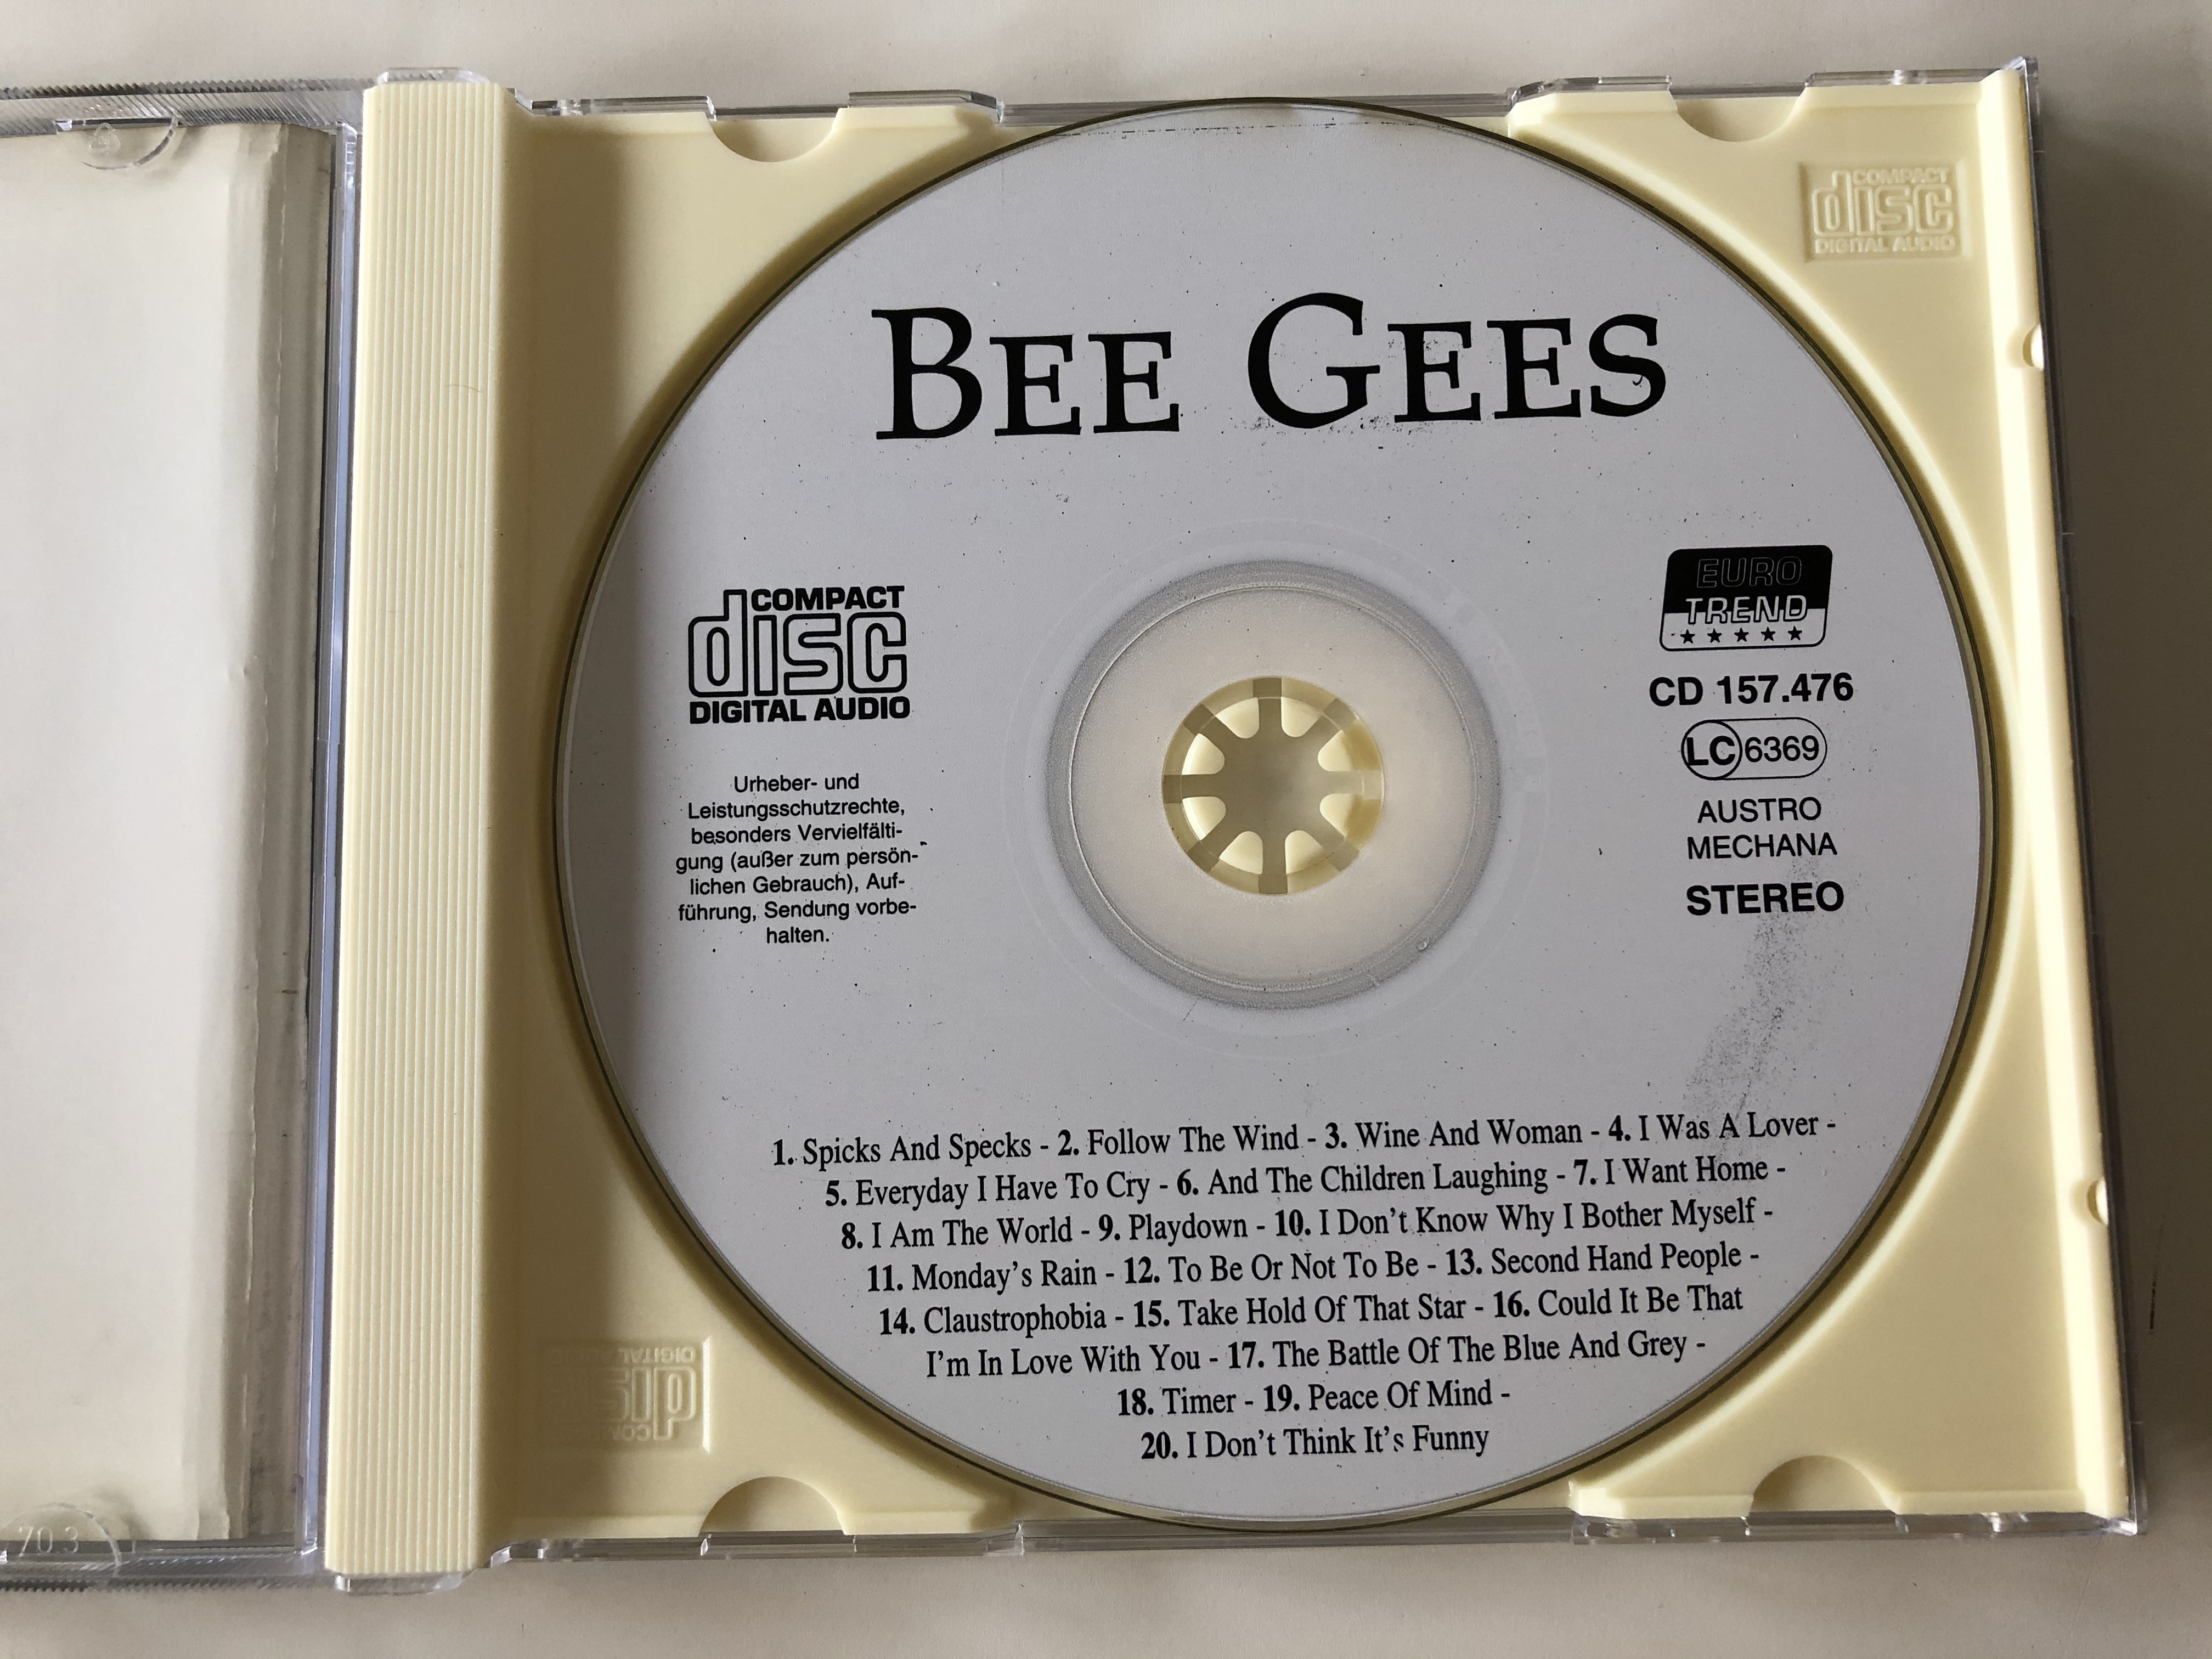 bee-gees-spicks-and-specks-follow-the-wind-peace-of-mind-take-hold-of-that-star-and-many-others-eurotrend-audio-cd-cd-157-2-.jpg